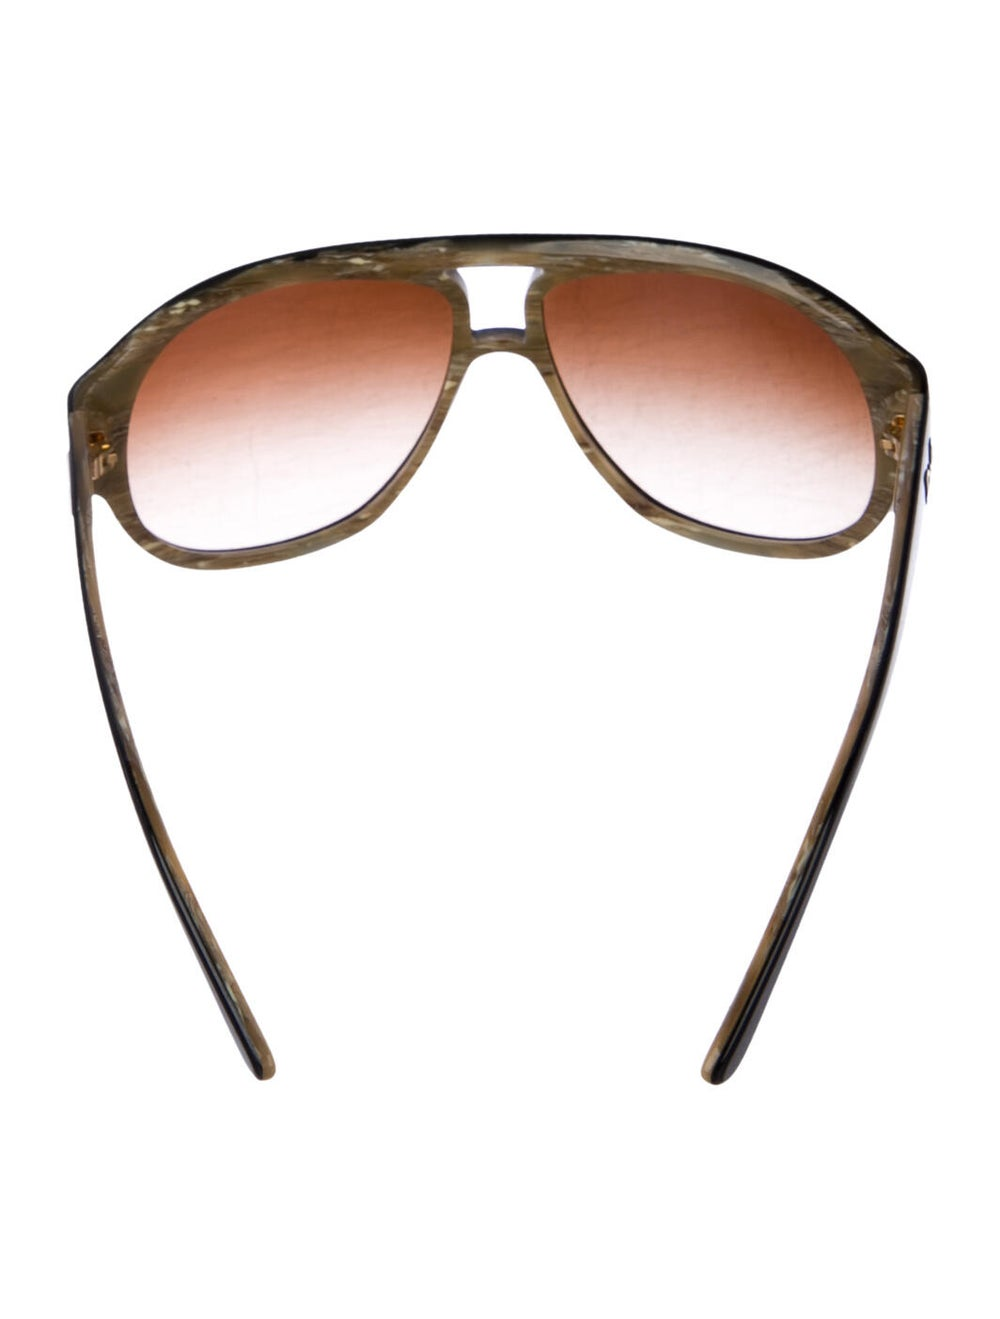 Dolce & Gabbana Gradient Aviator Sunglasses black - image 3